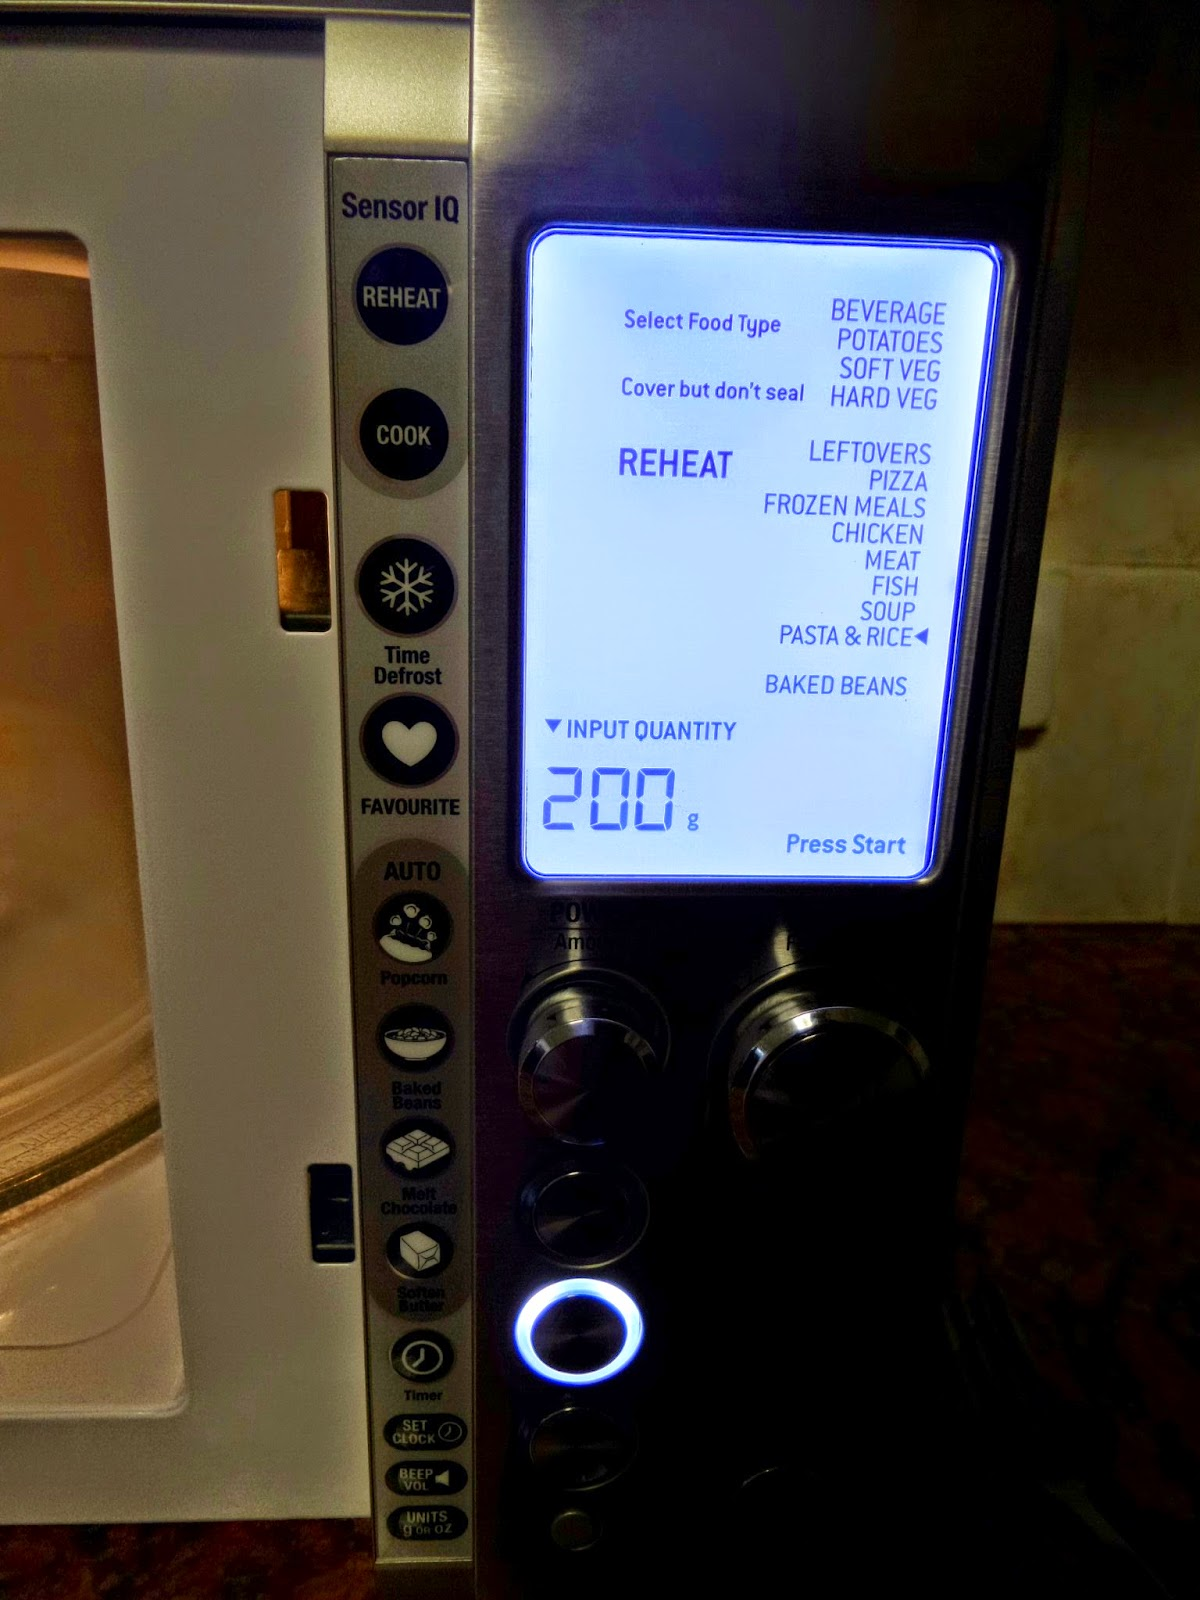 Different functions of the Sage One Touch Microwave by Heston Blumenthal